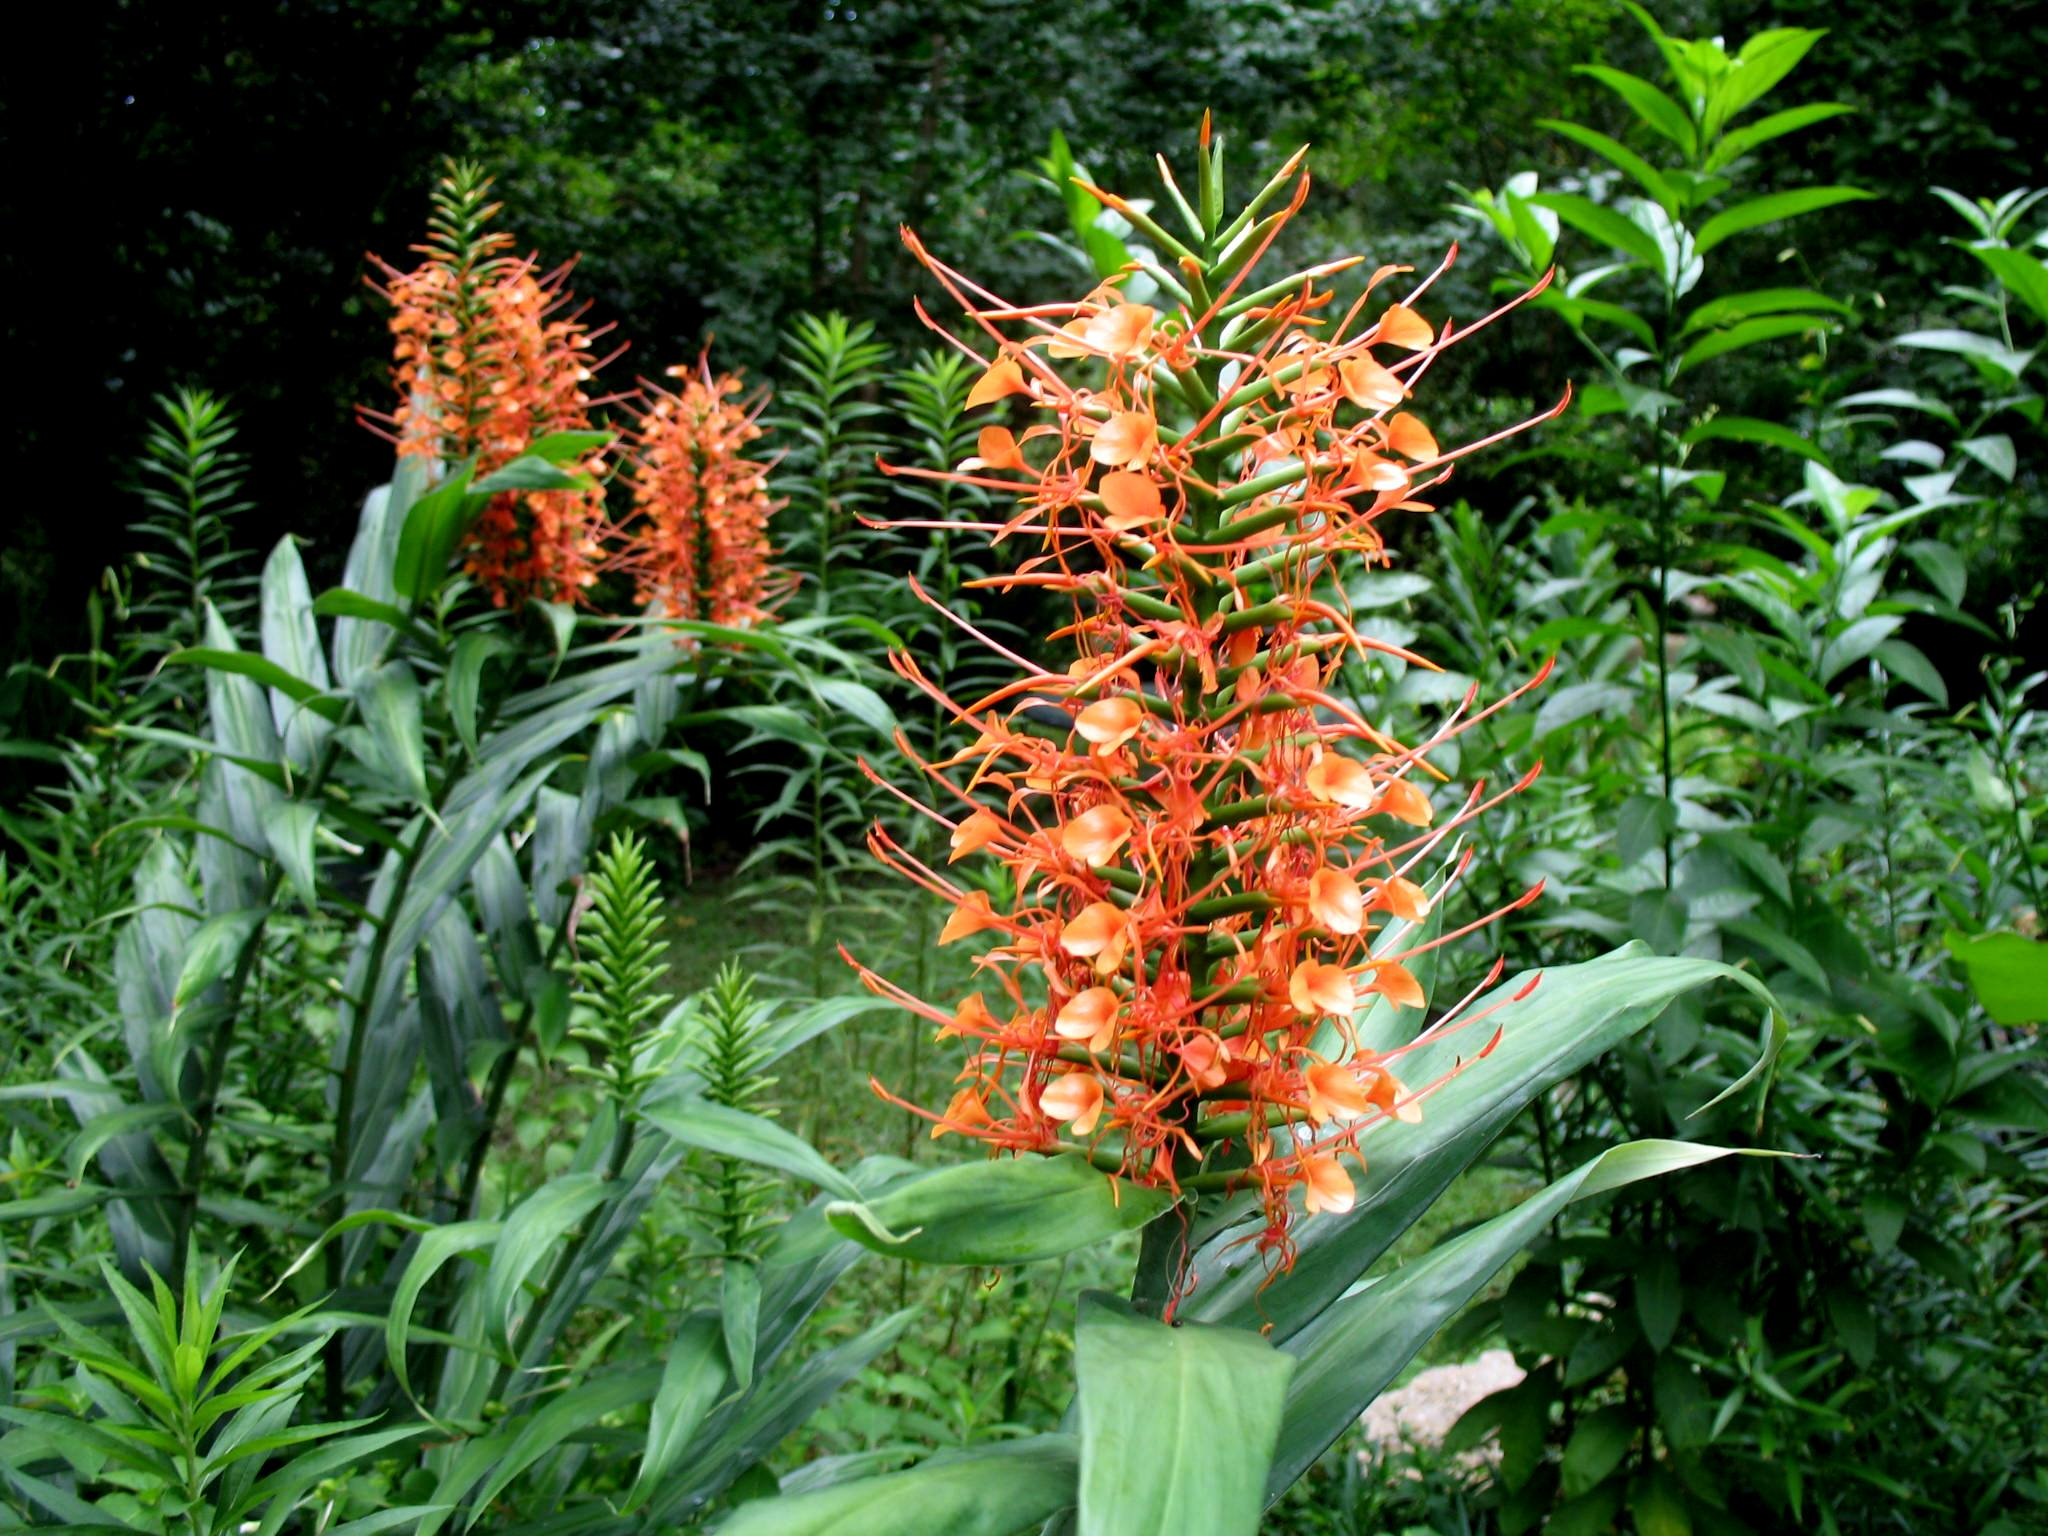 Hedychium species / Ginger